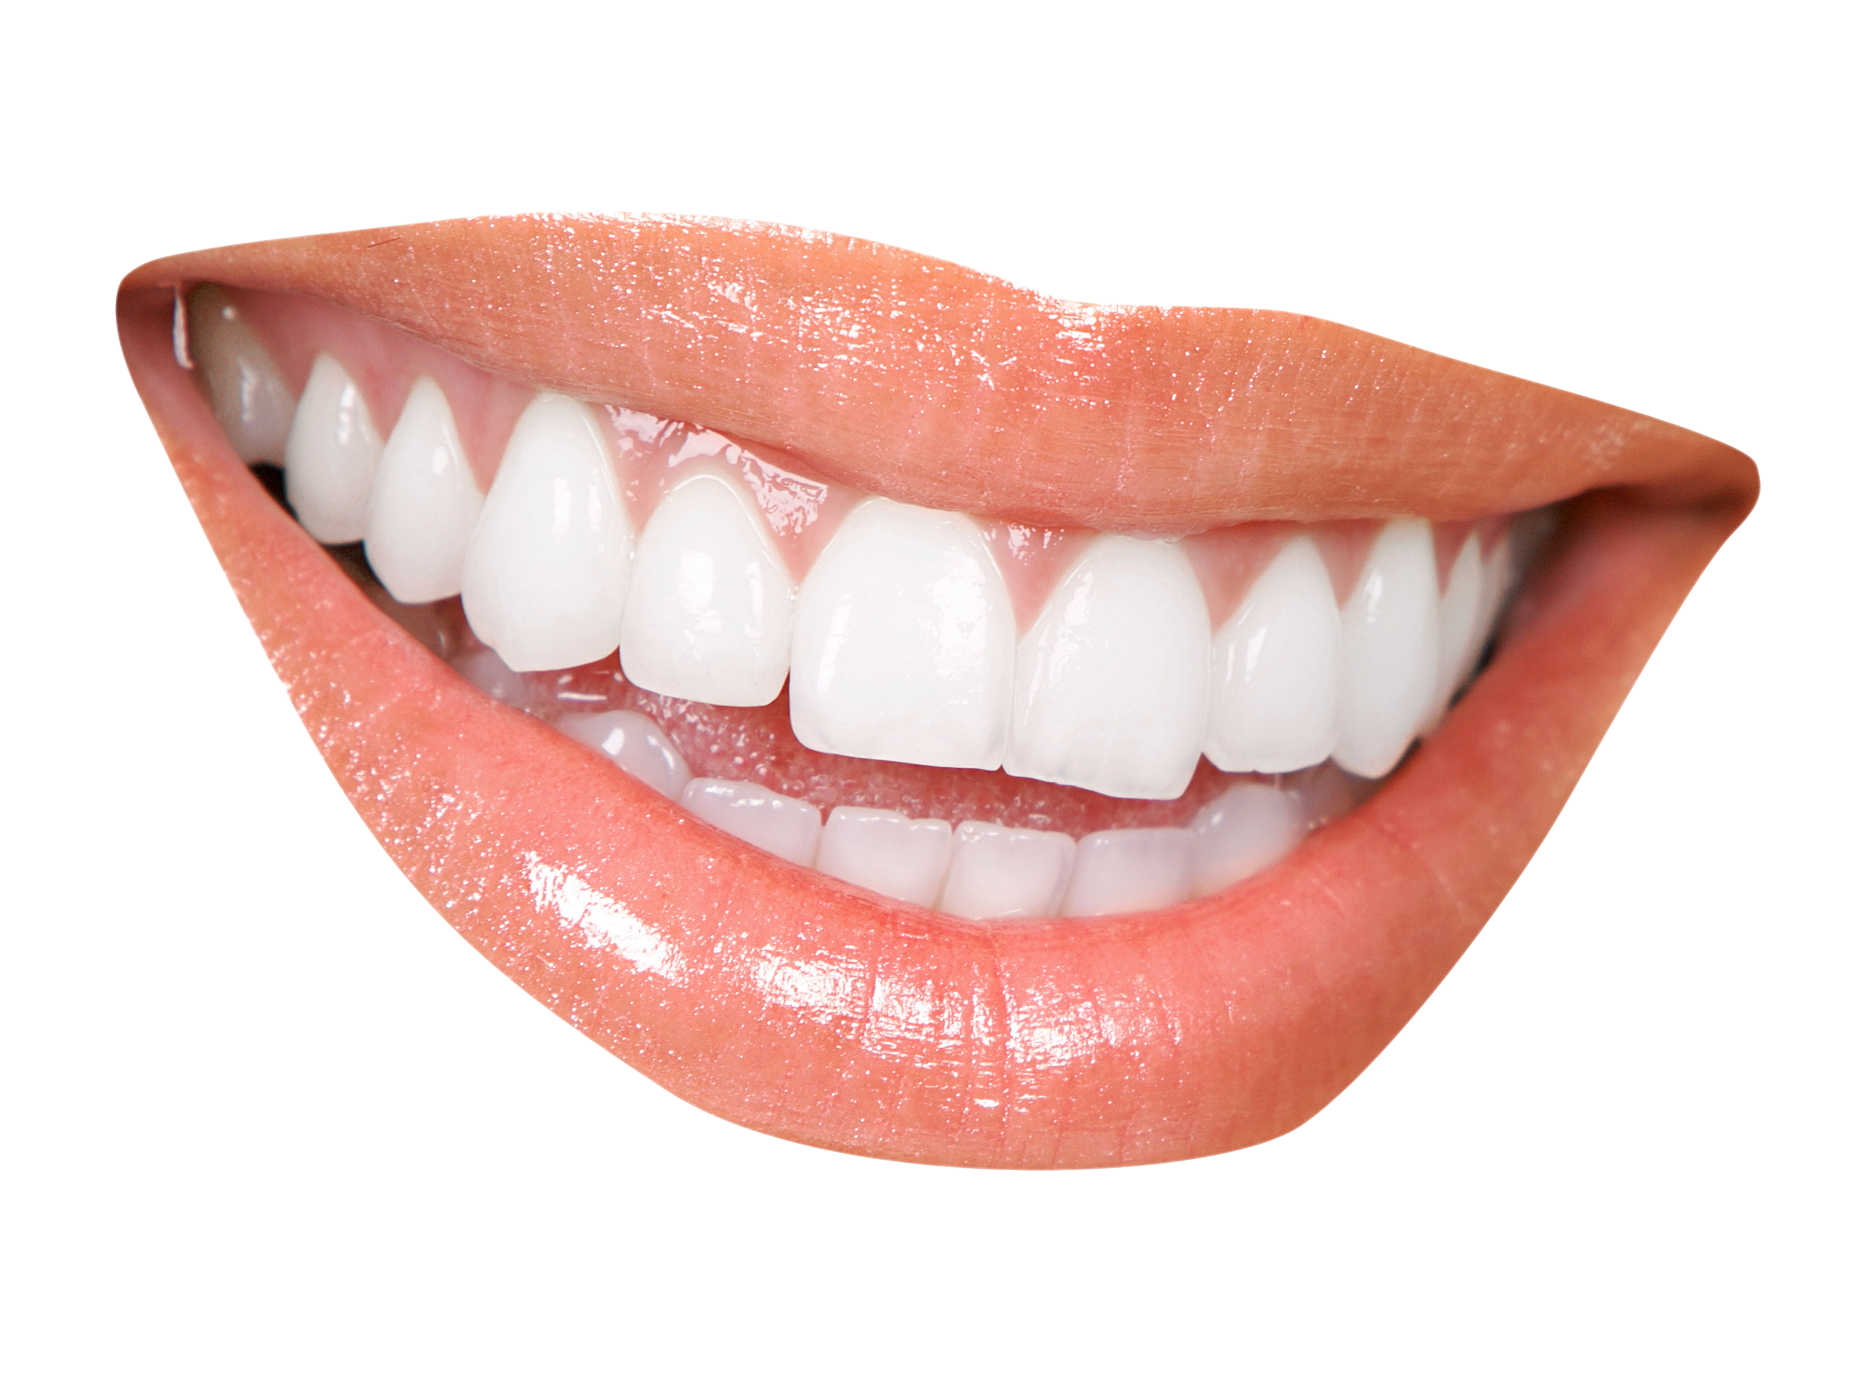 Teeth Mouth Png Transparent Background Free Download 46531 Freeiconspng Fuchsia mouth the rolling stones. free icons png